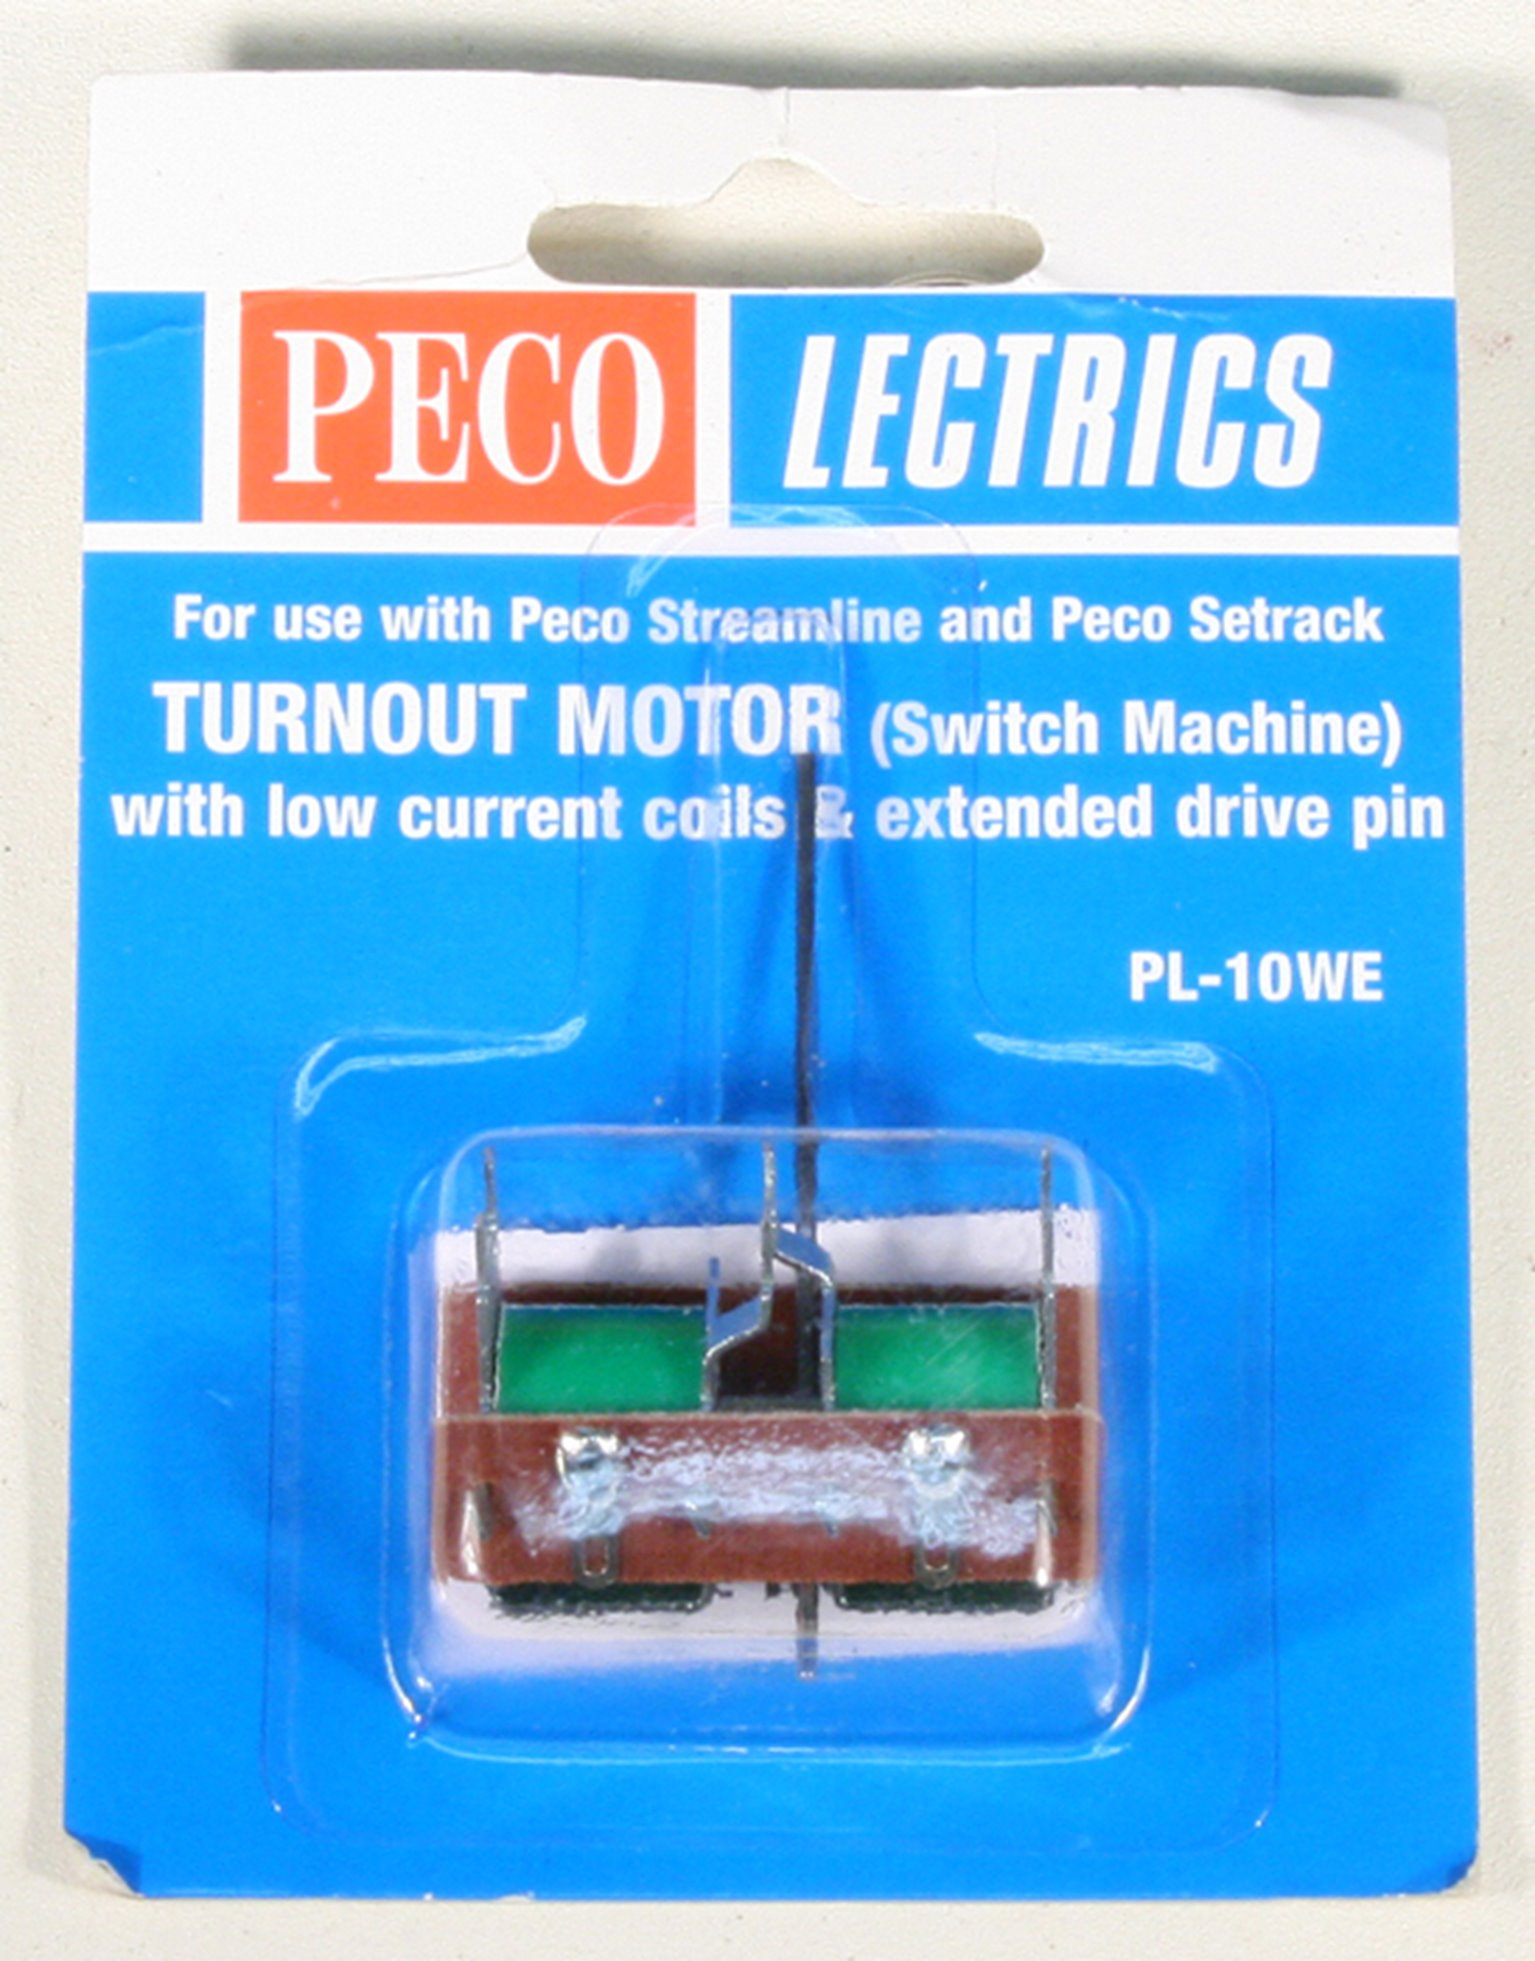 Turnout motor, low current, extended pin